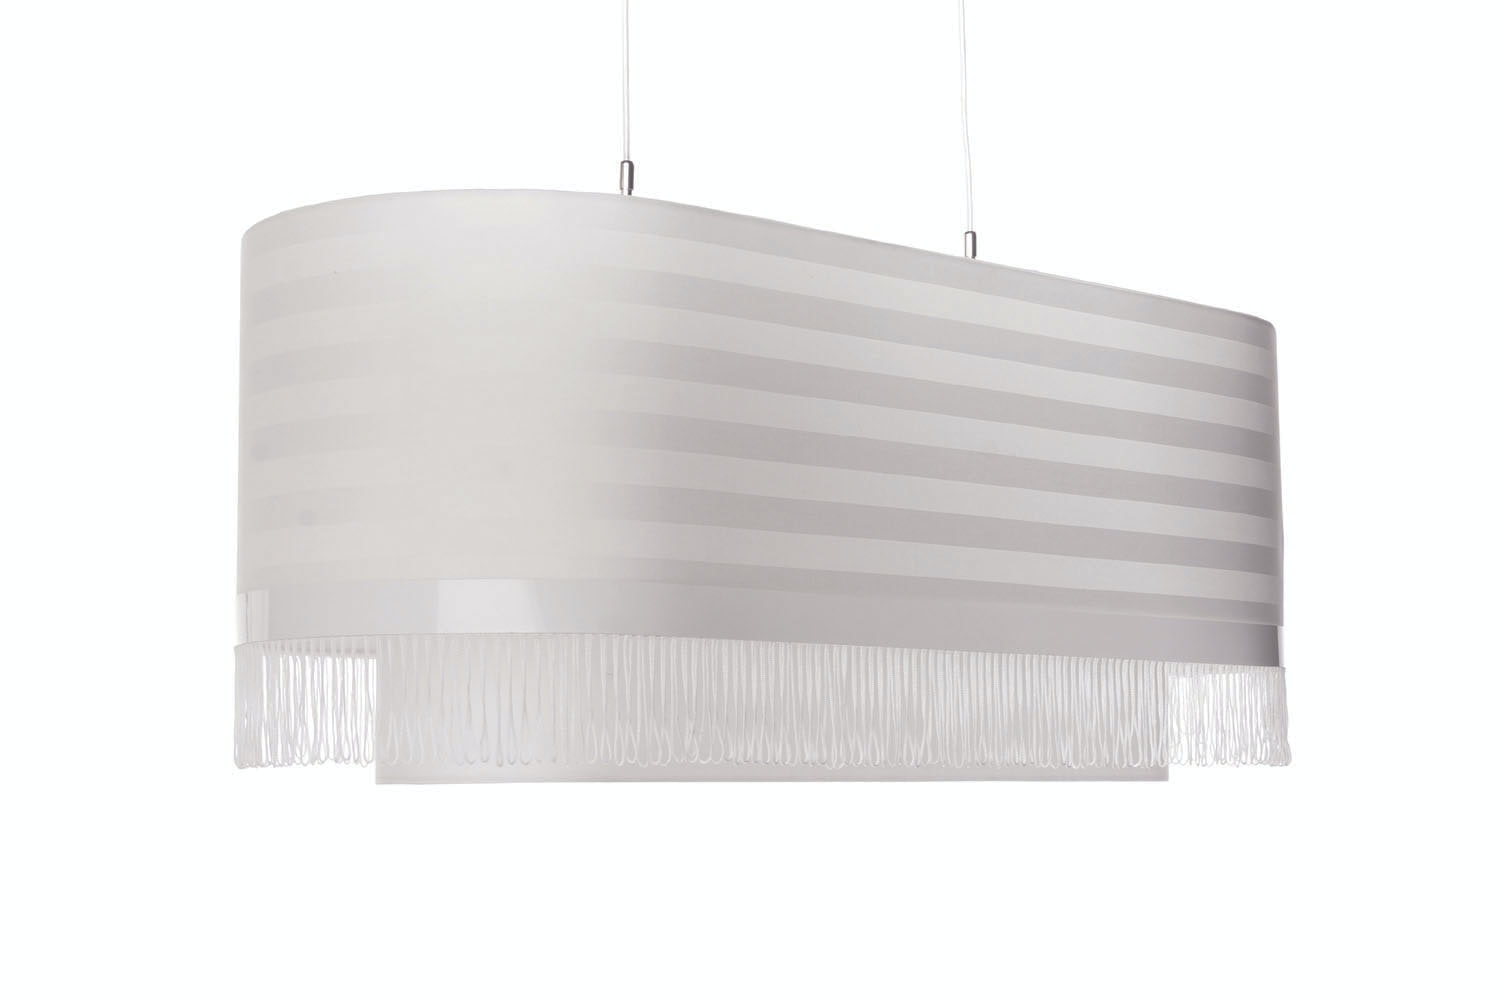 Fringe 6 Suspension Lamp by Edward van Vliet for Moooi